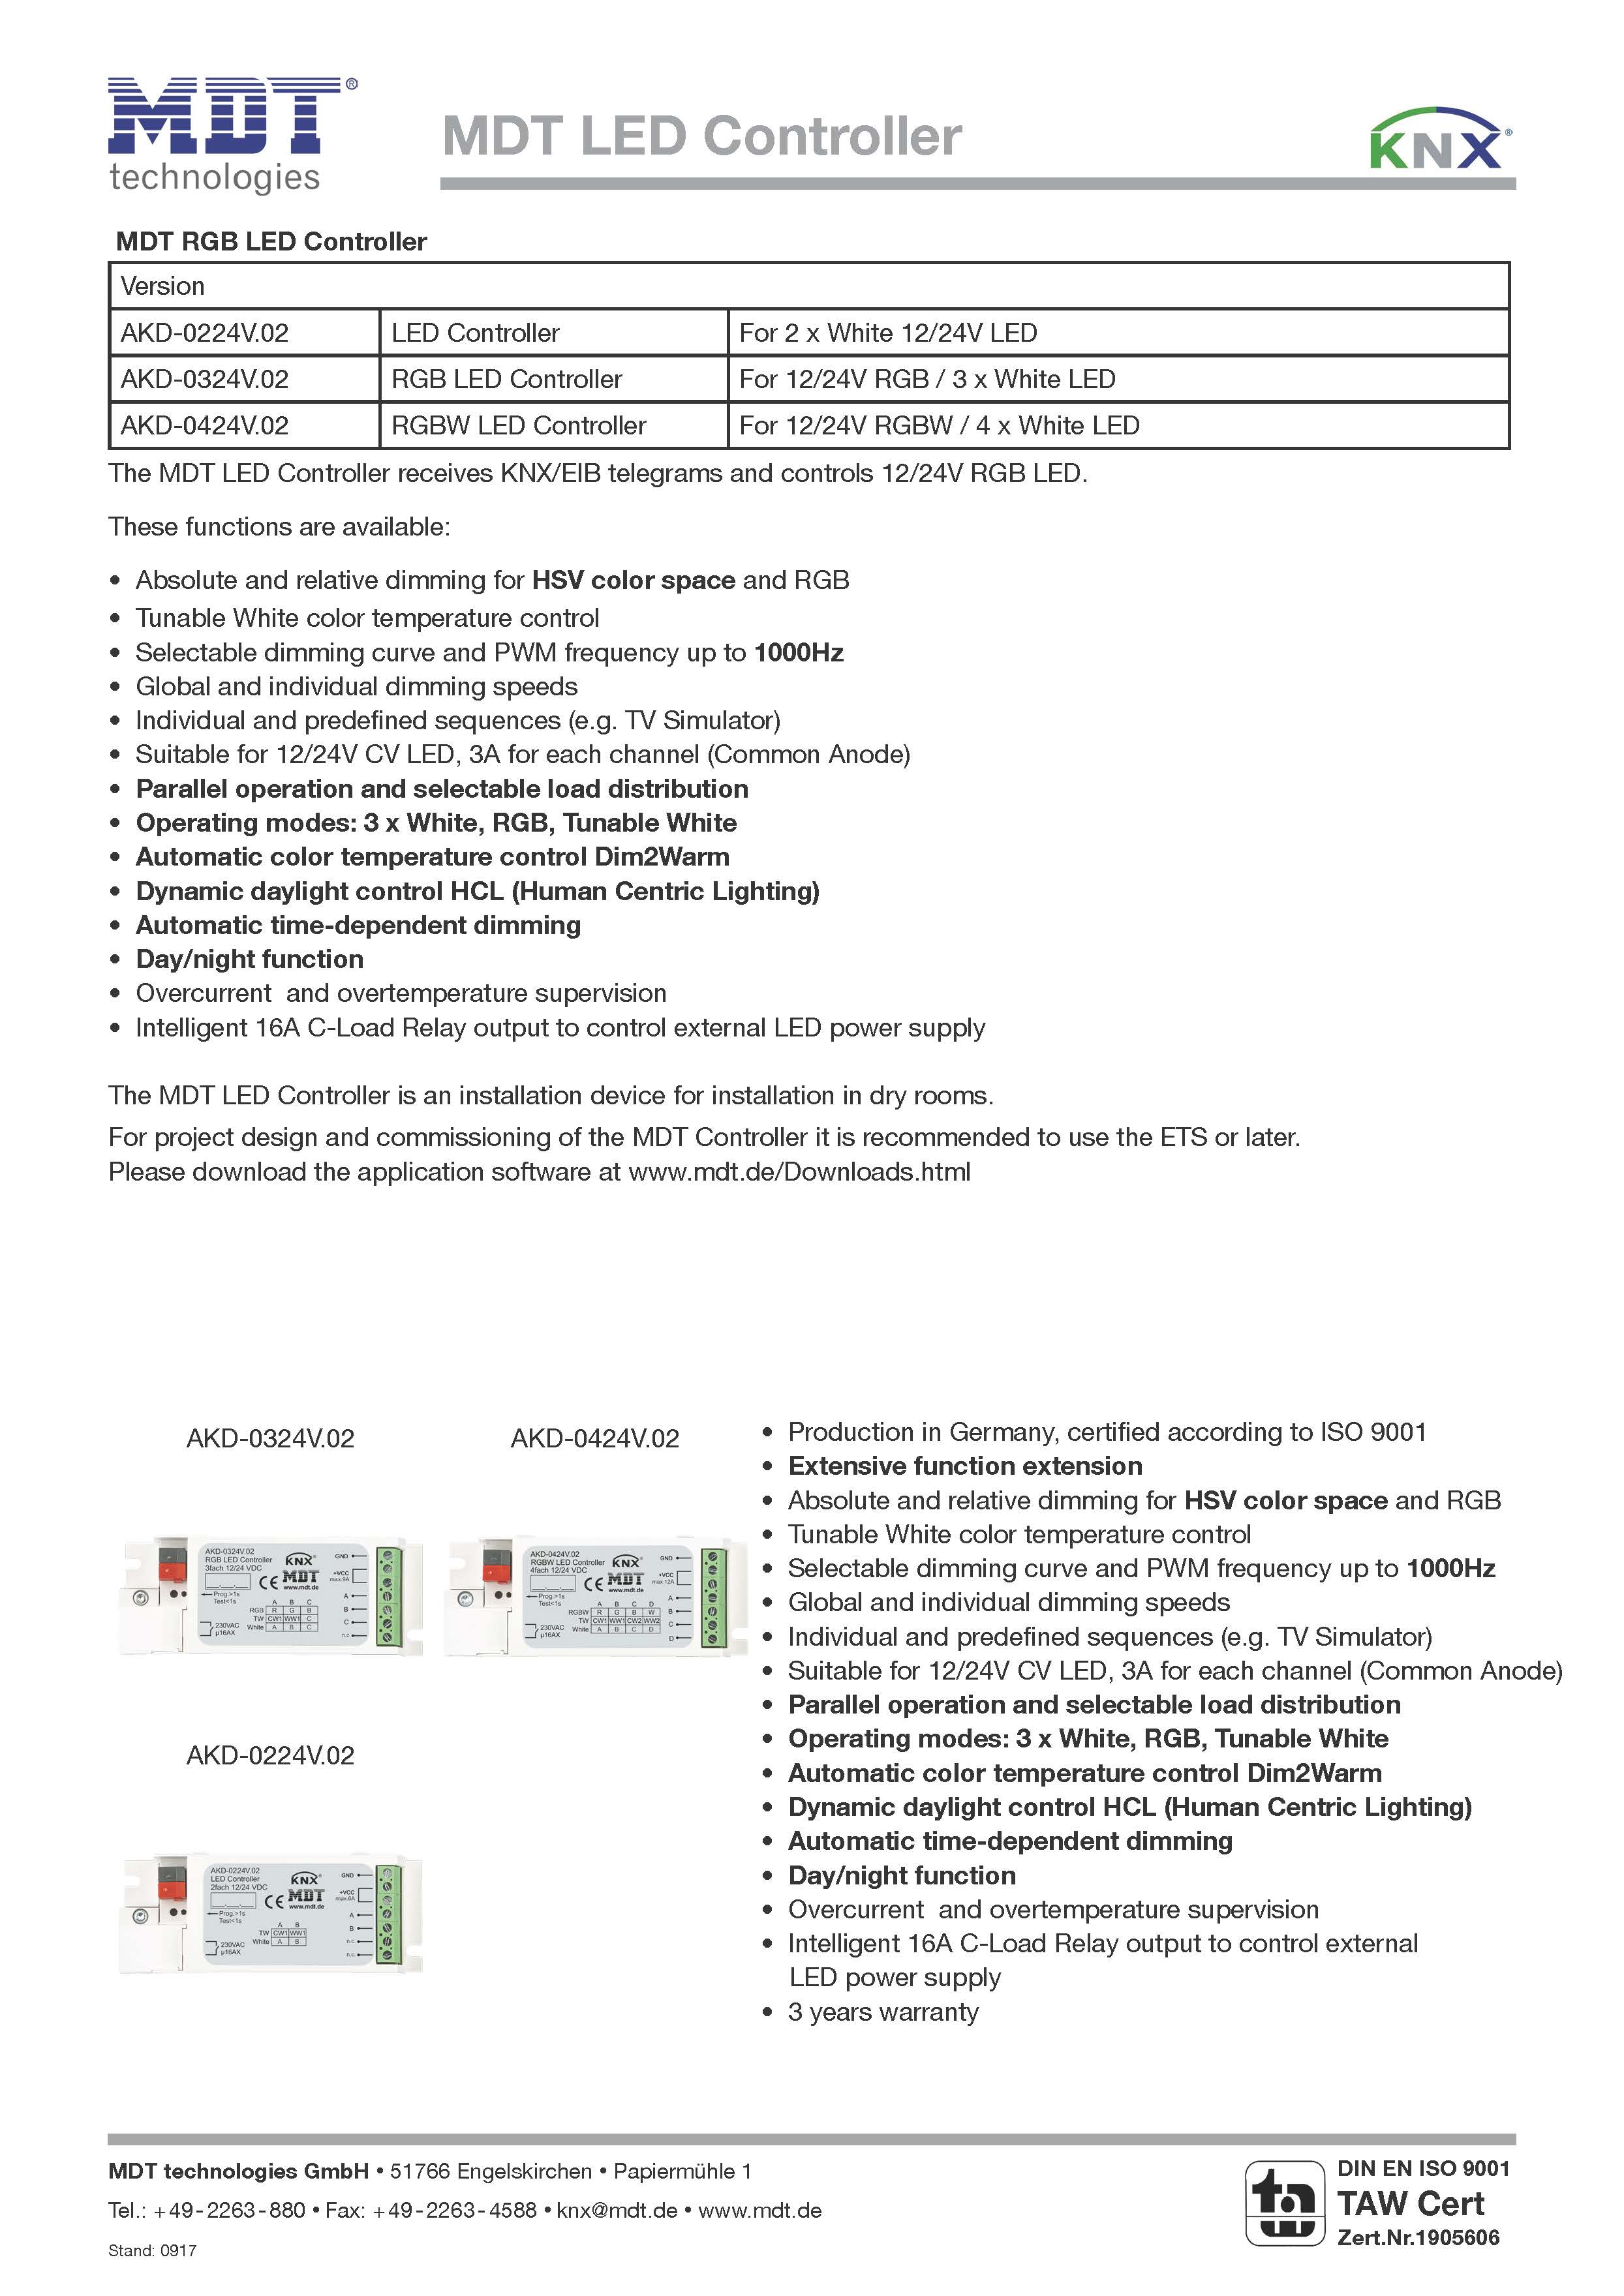 MDT DS LED Controller UP 02 Страница 1